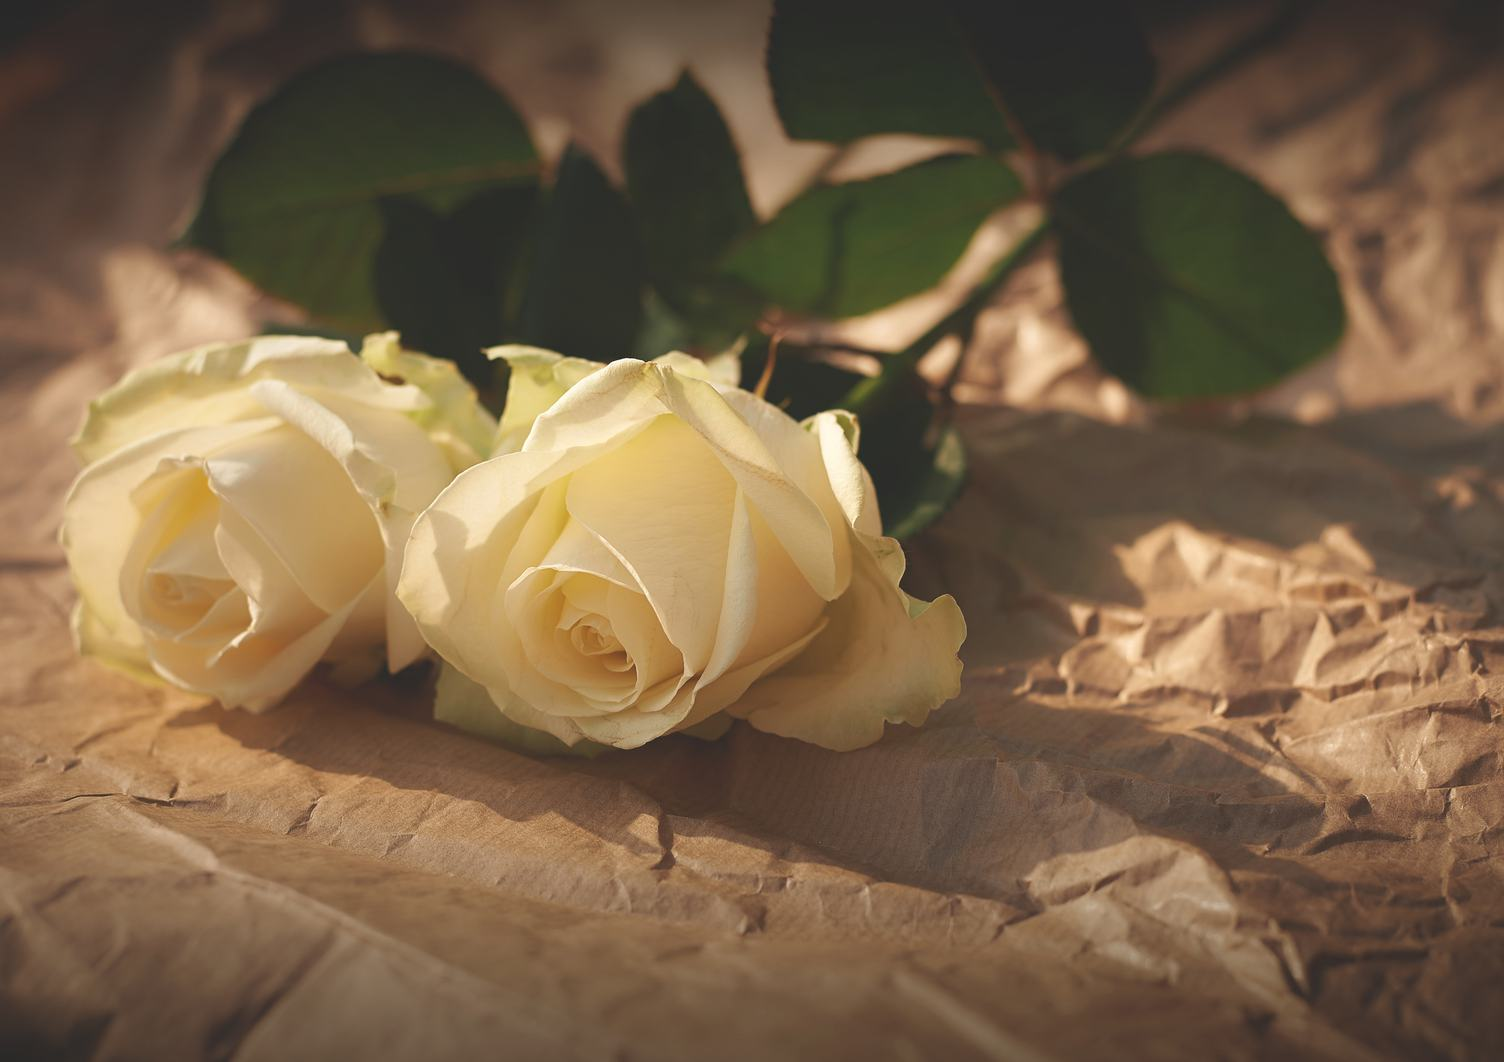 Two Roses on Crumpled Paper